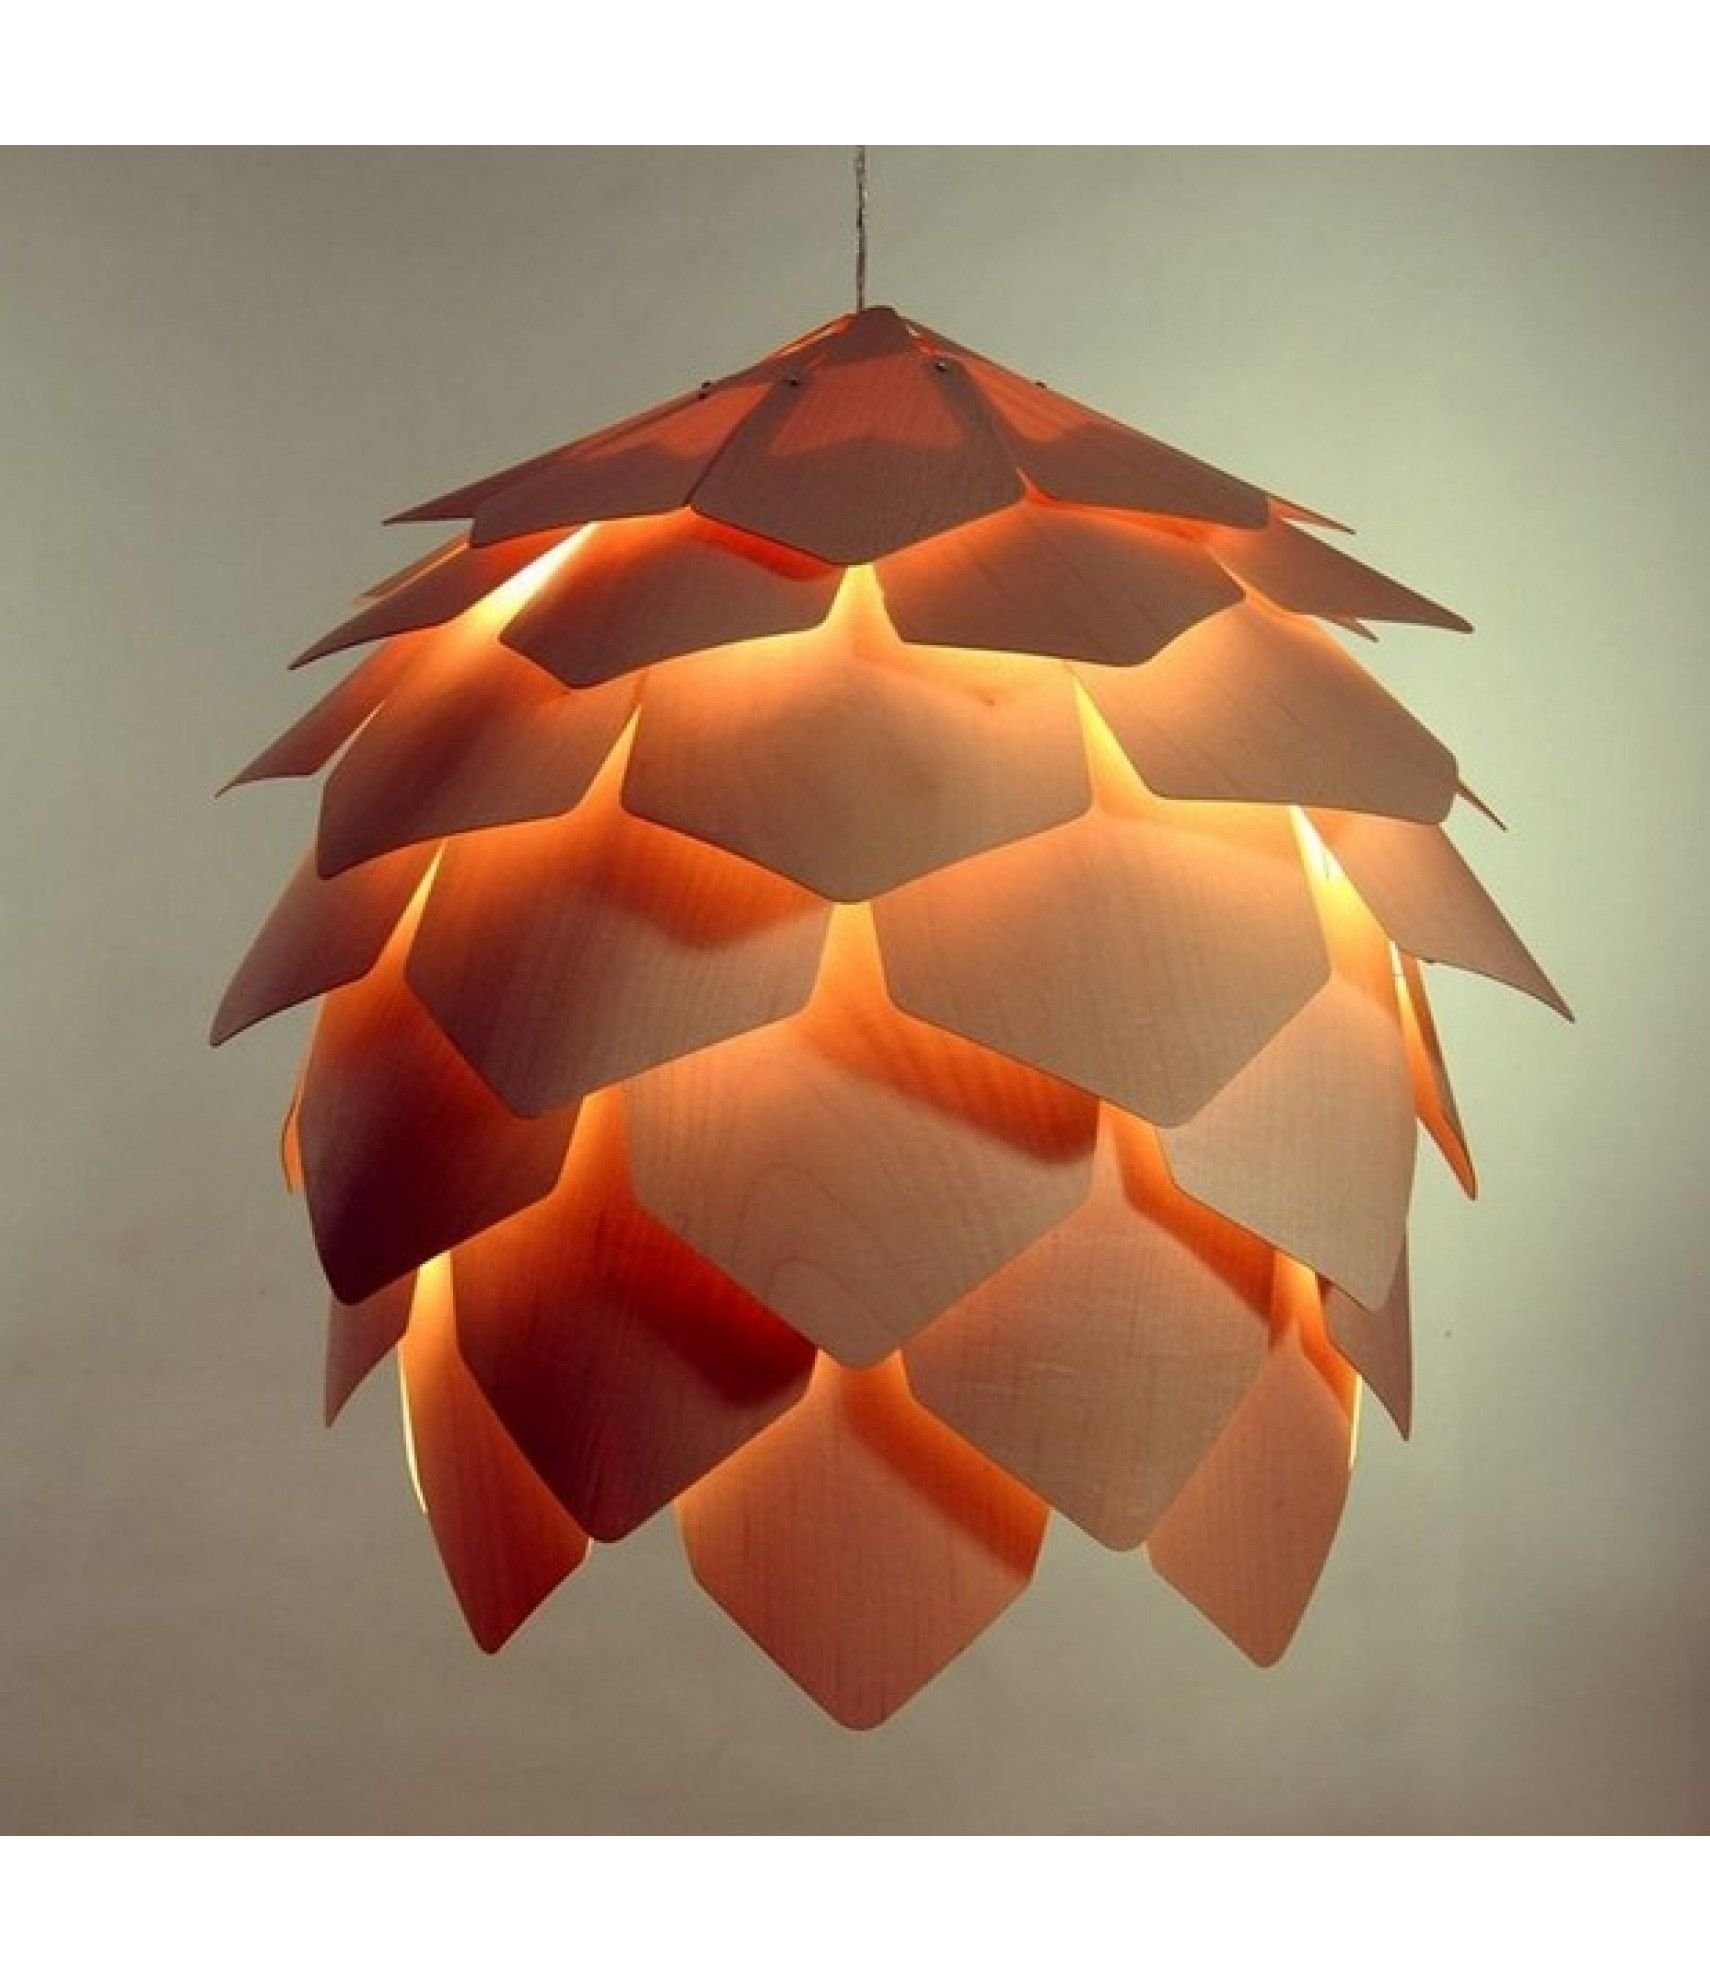 Unusual pendant lamps inspired by medusas digsdigs - Replica Crimean Pinecone Pendant Lamp By Pavel Eekra